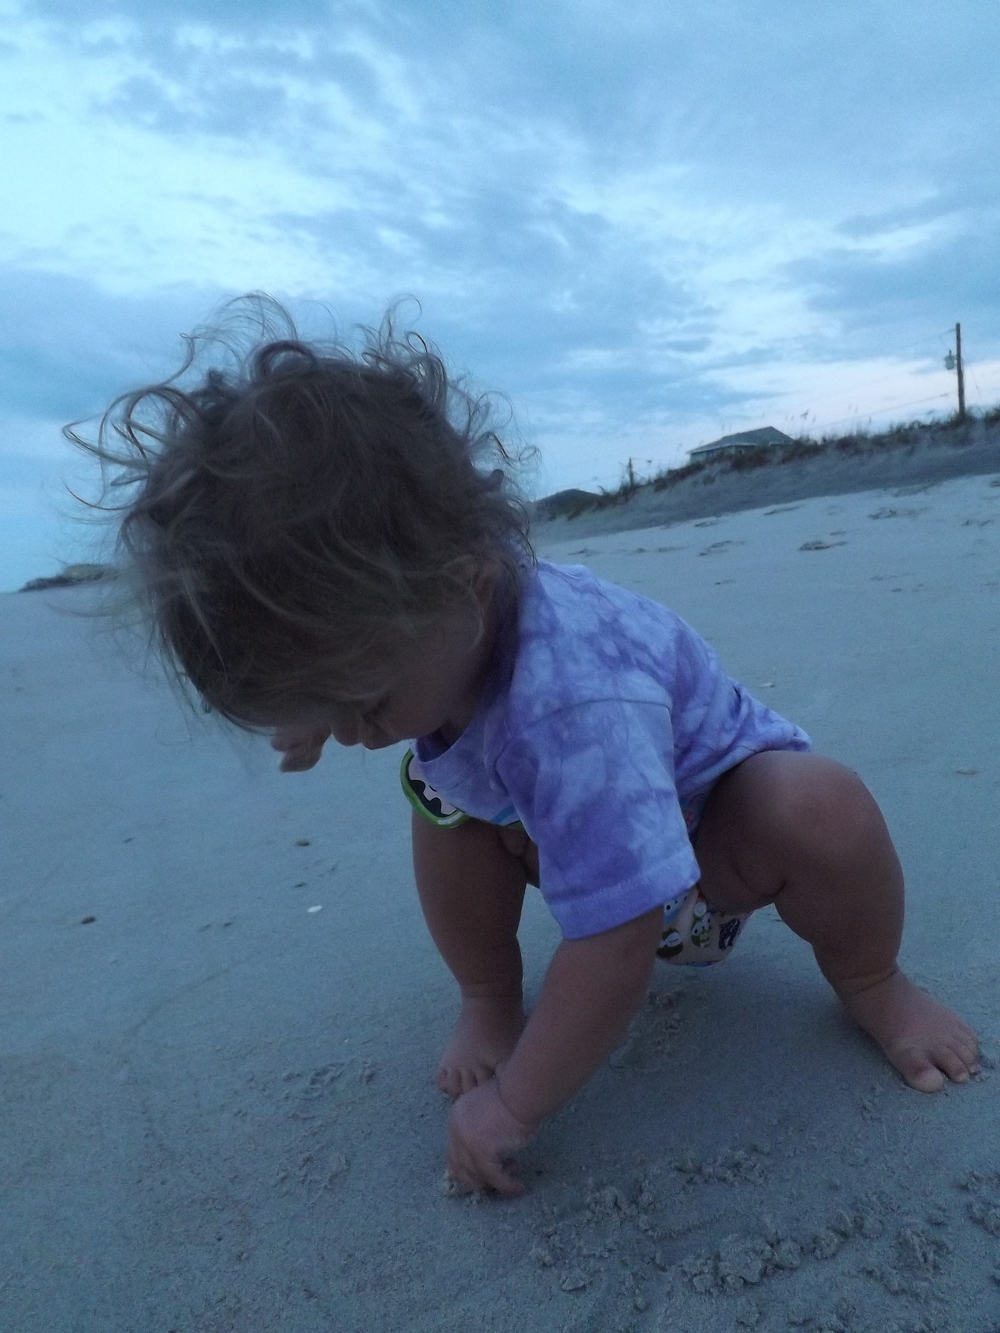 My wild-haired shell collector